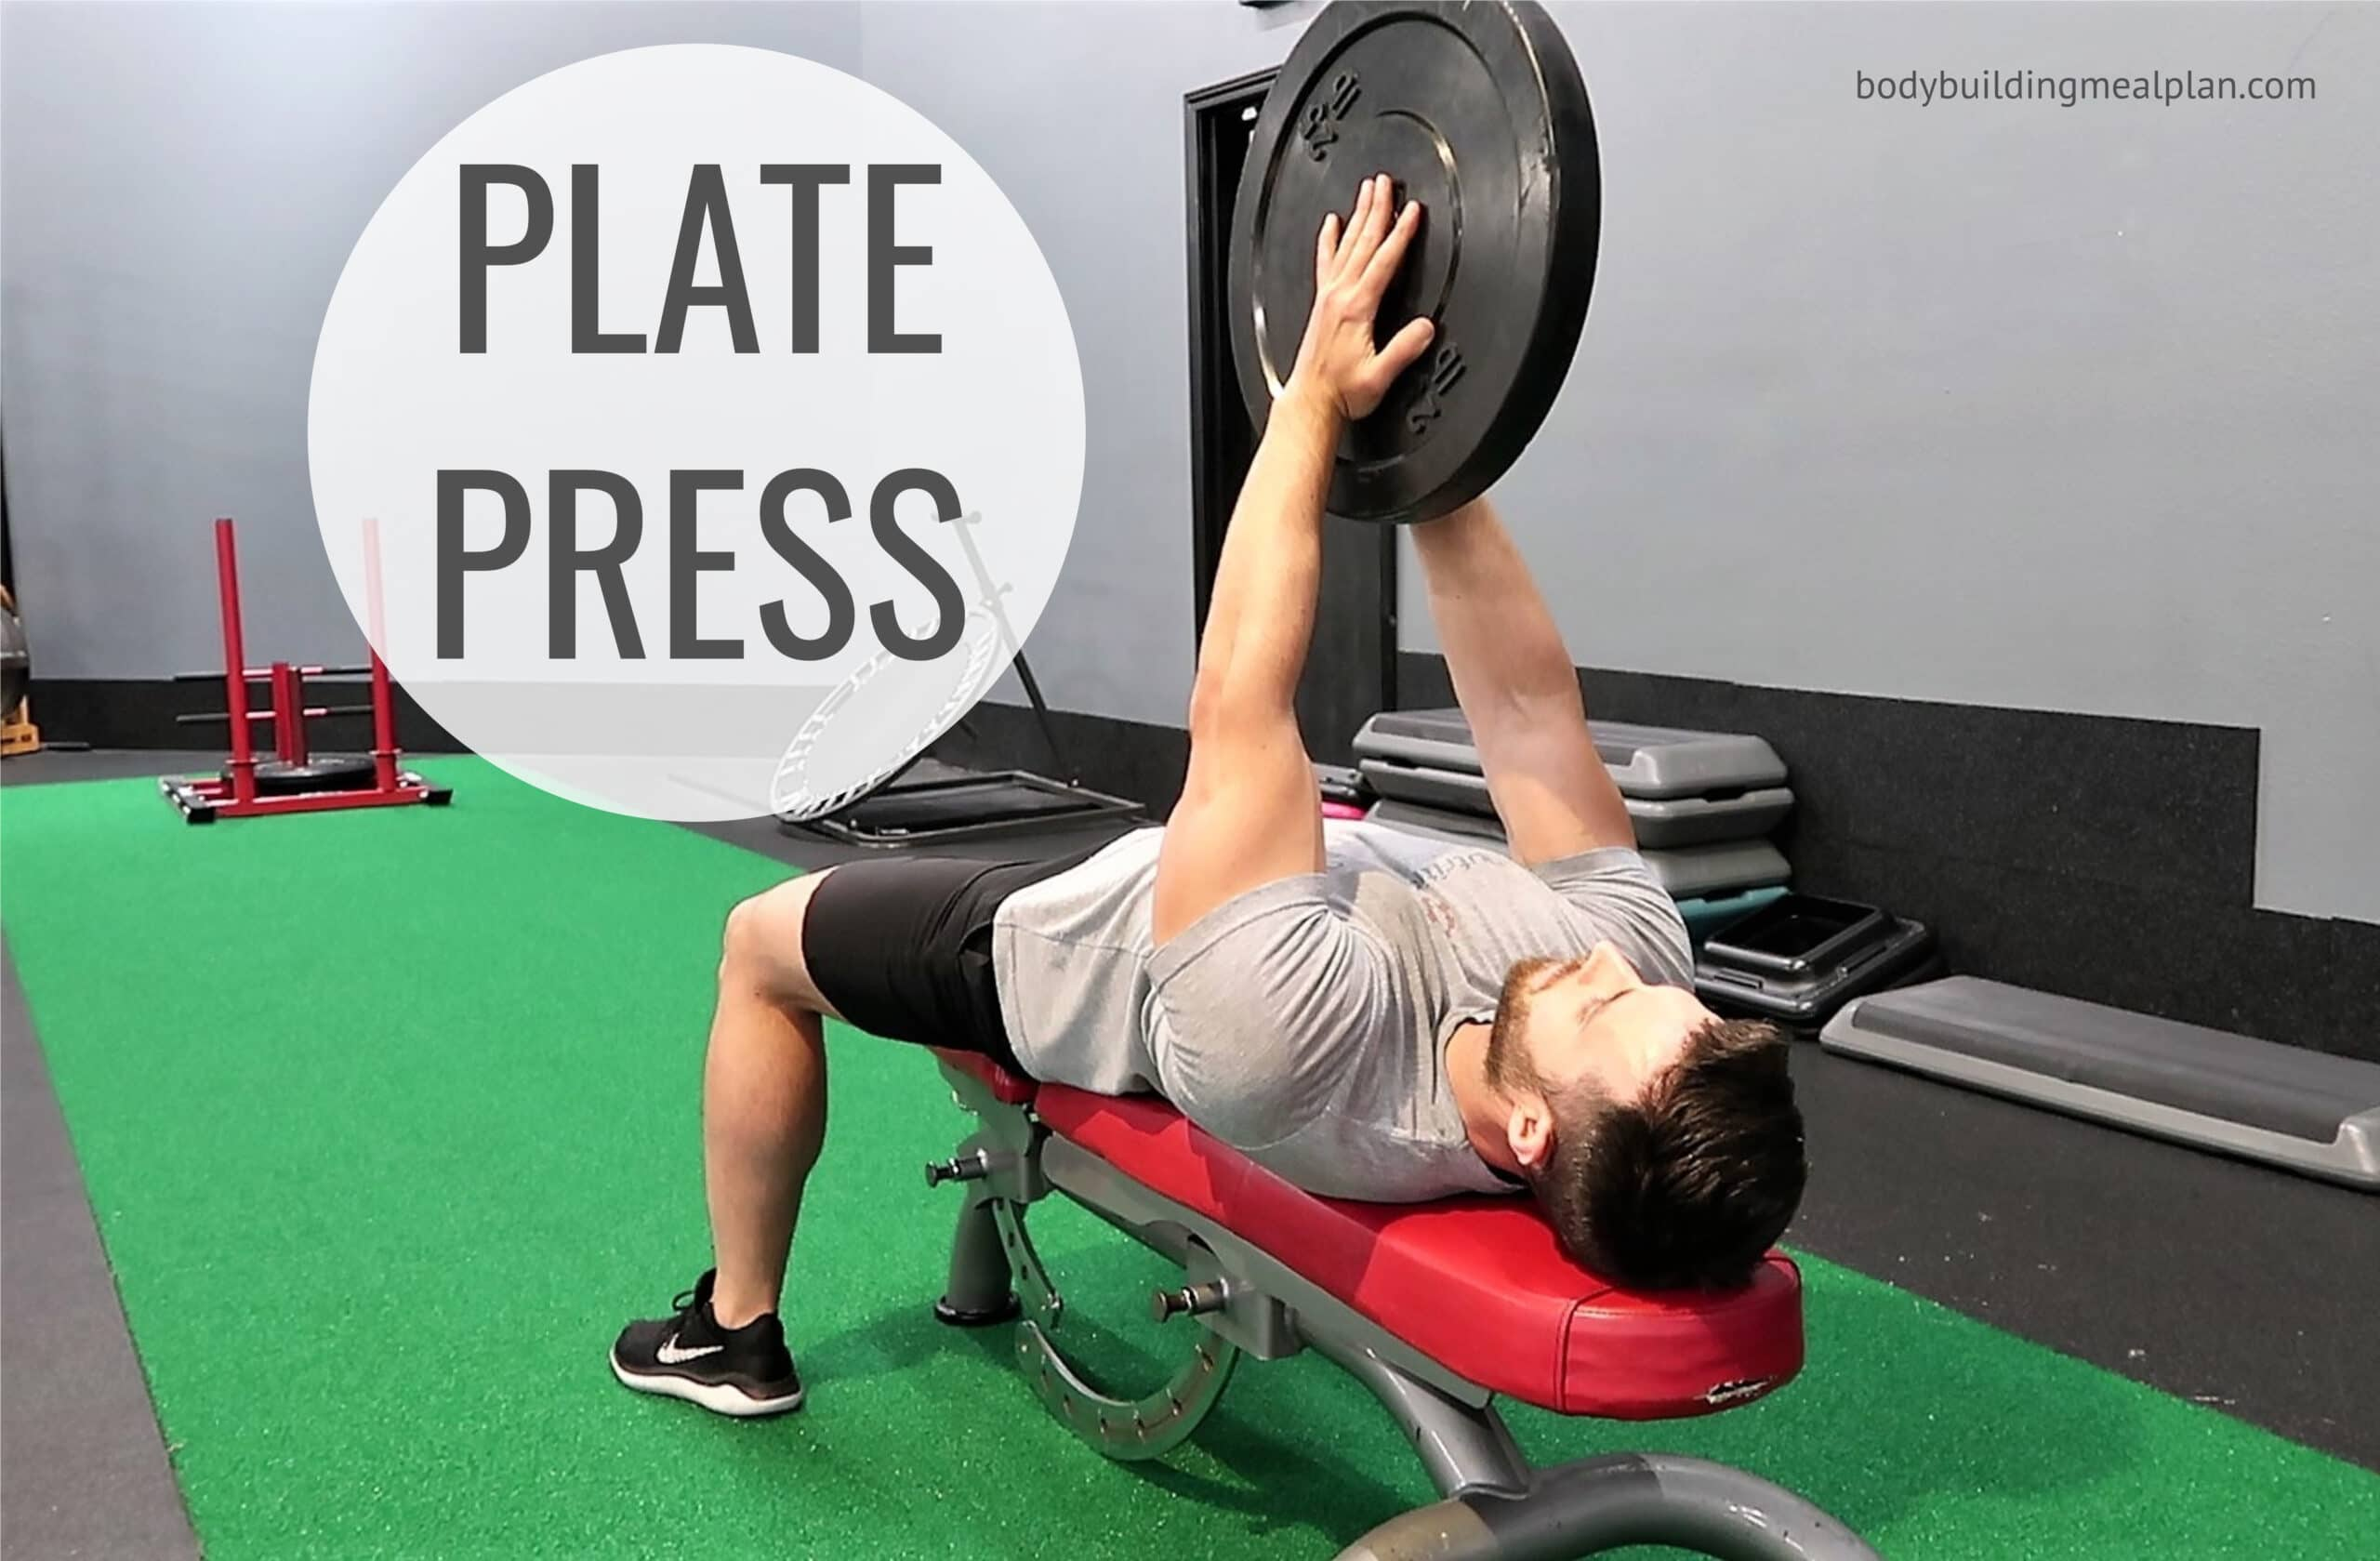 Plate Press Exercise